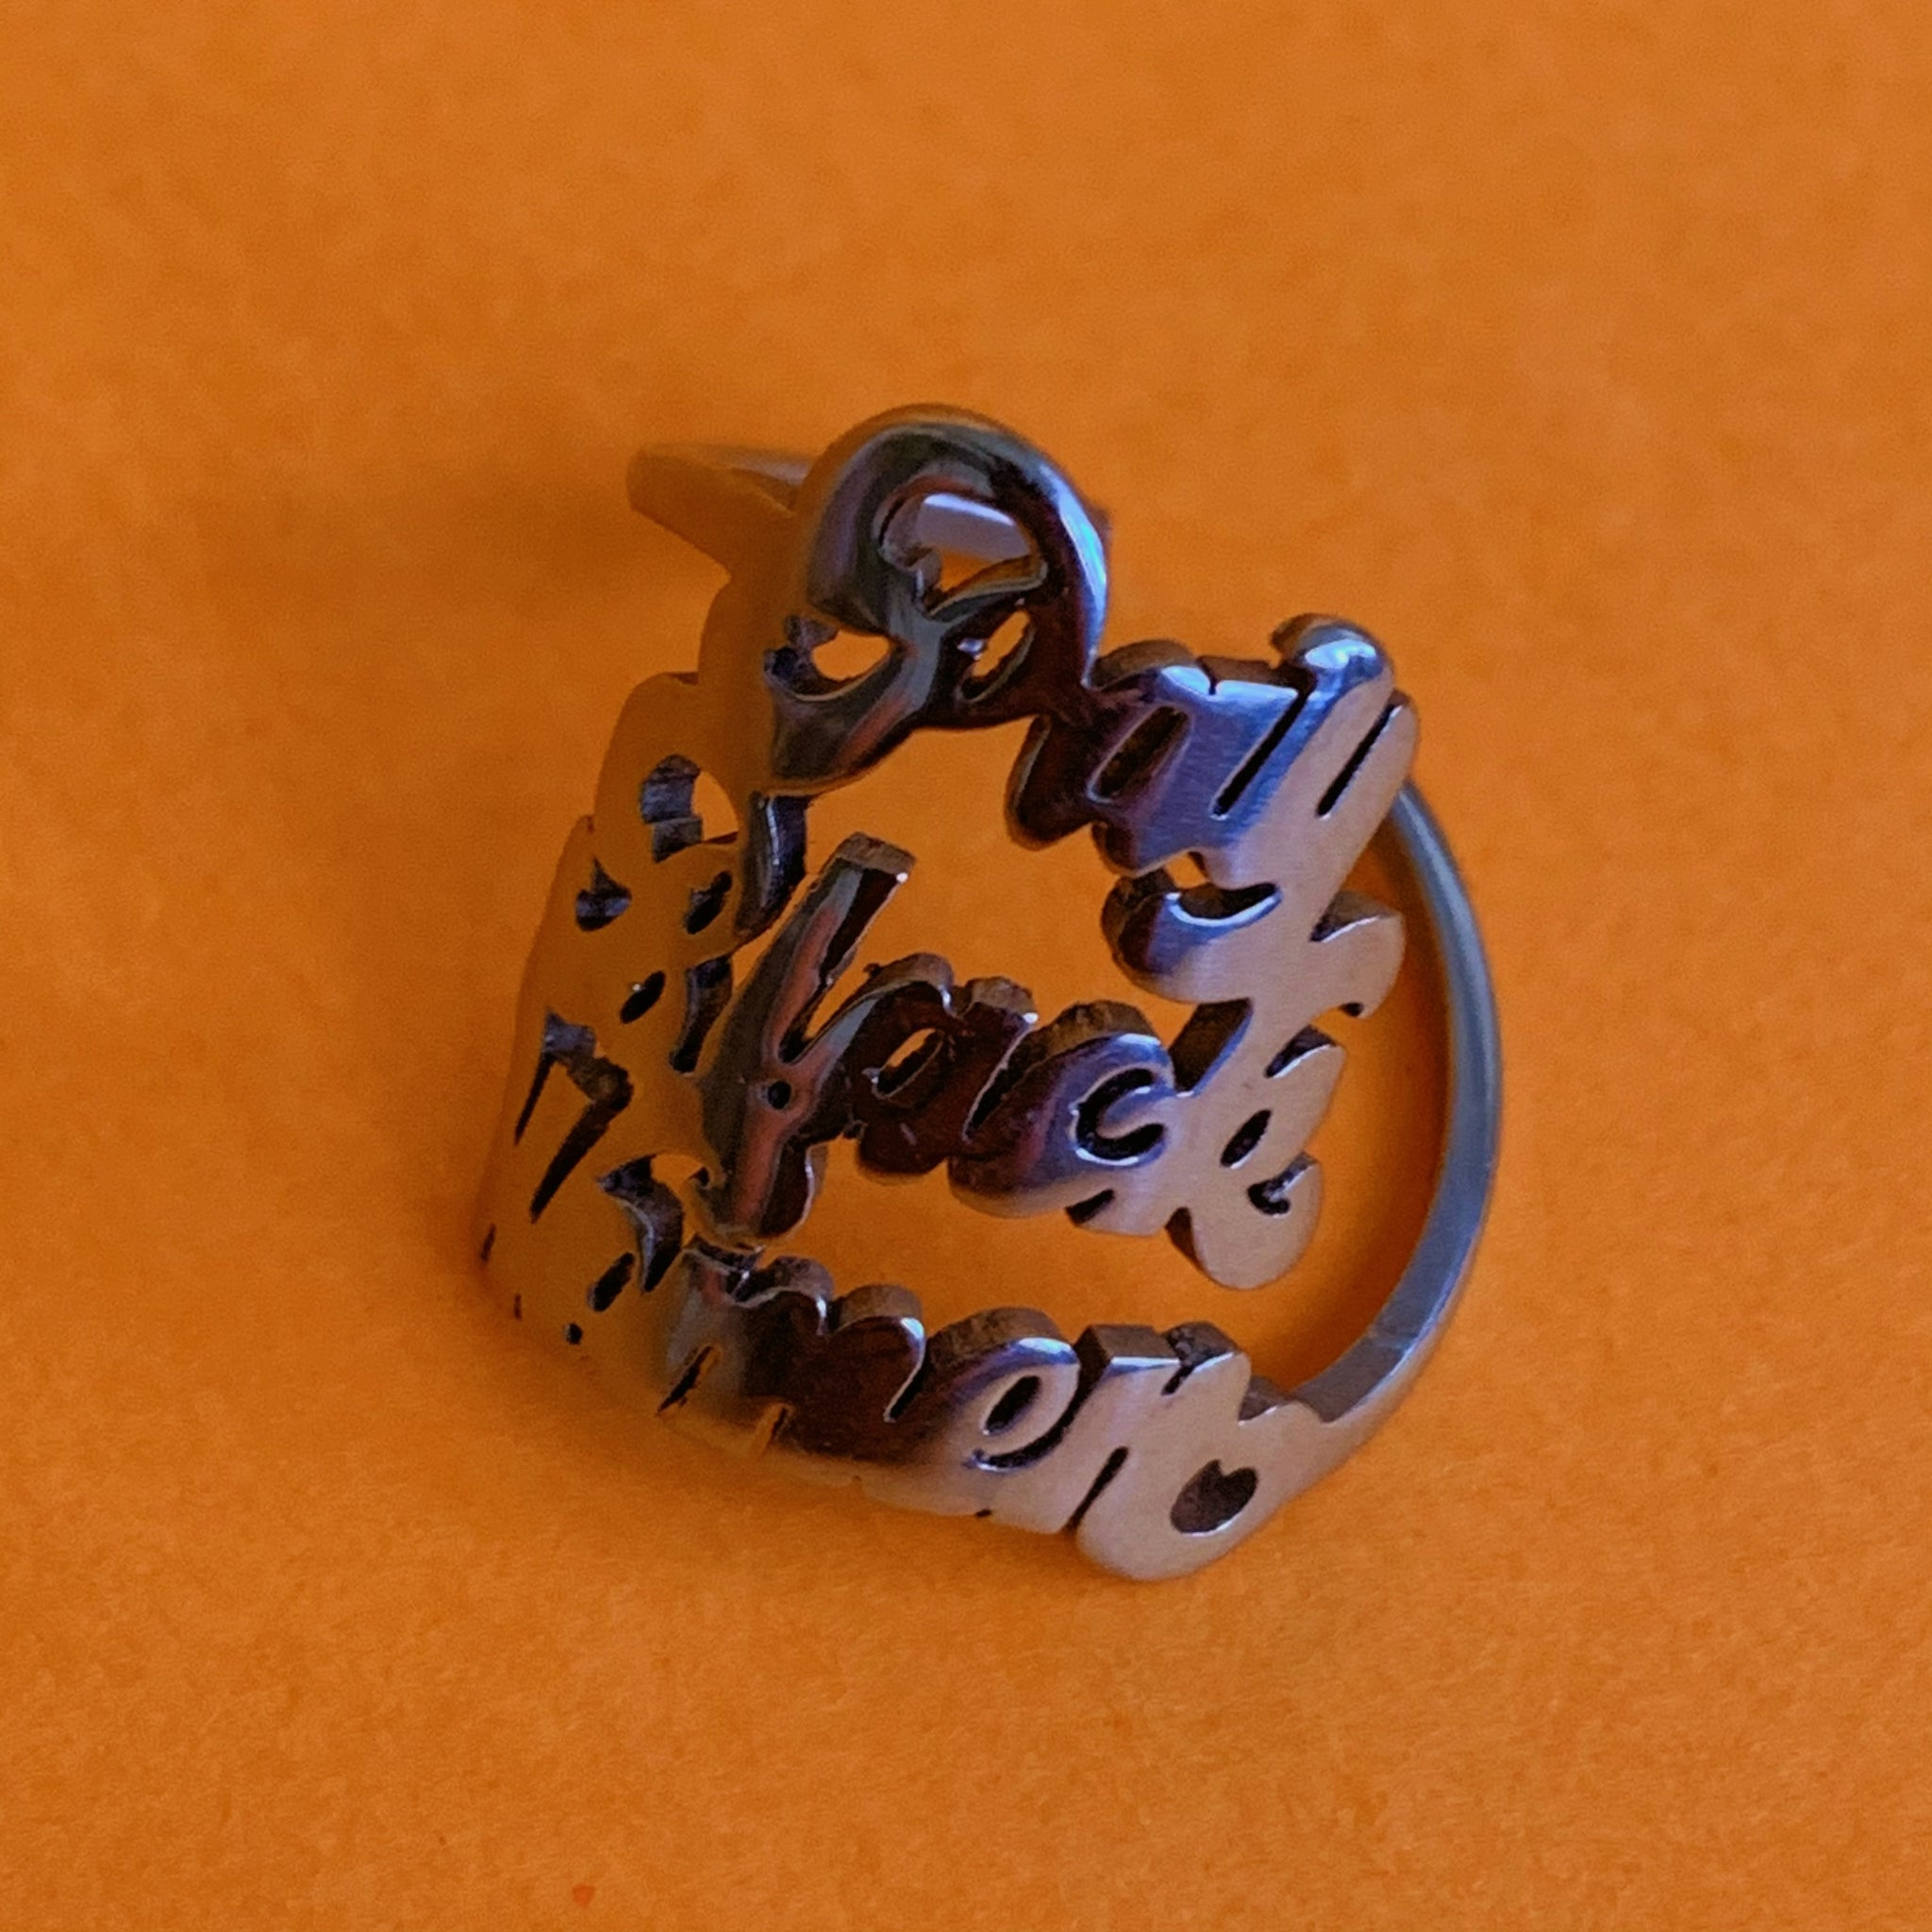 Sample Sale: Pay Black Women ring (SILVER) - Brownie Points for You